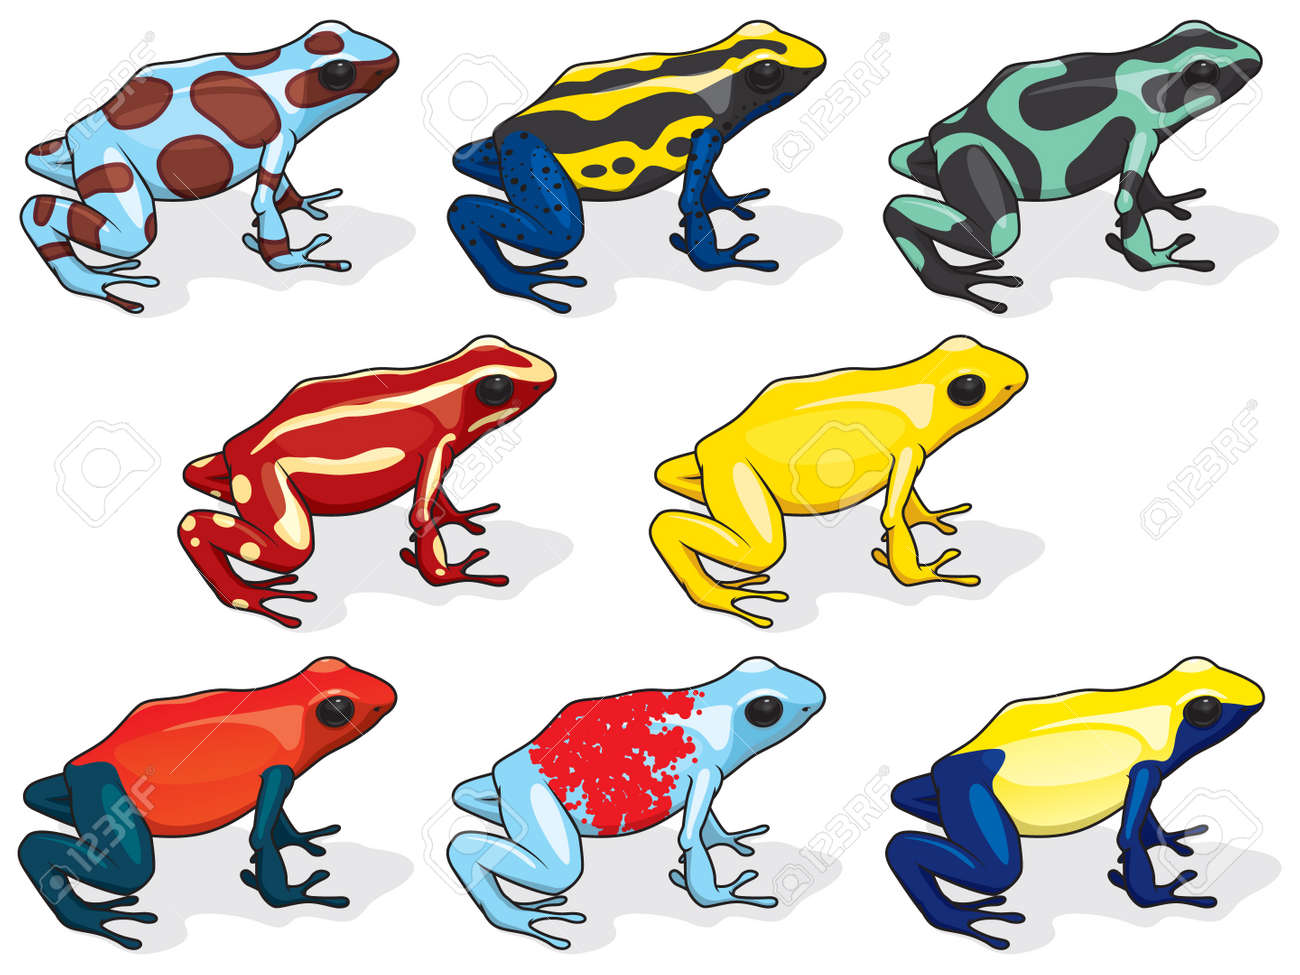 poison dart frogs royalty free cliparts vectors and stock rh 123rf com Red-Eyed Tree Frog Rainbow Poison Dart Frog